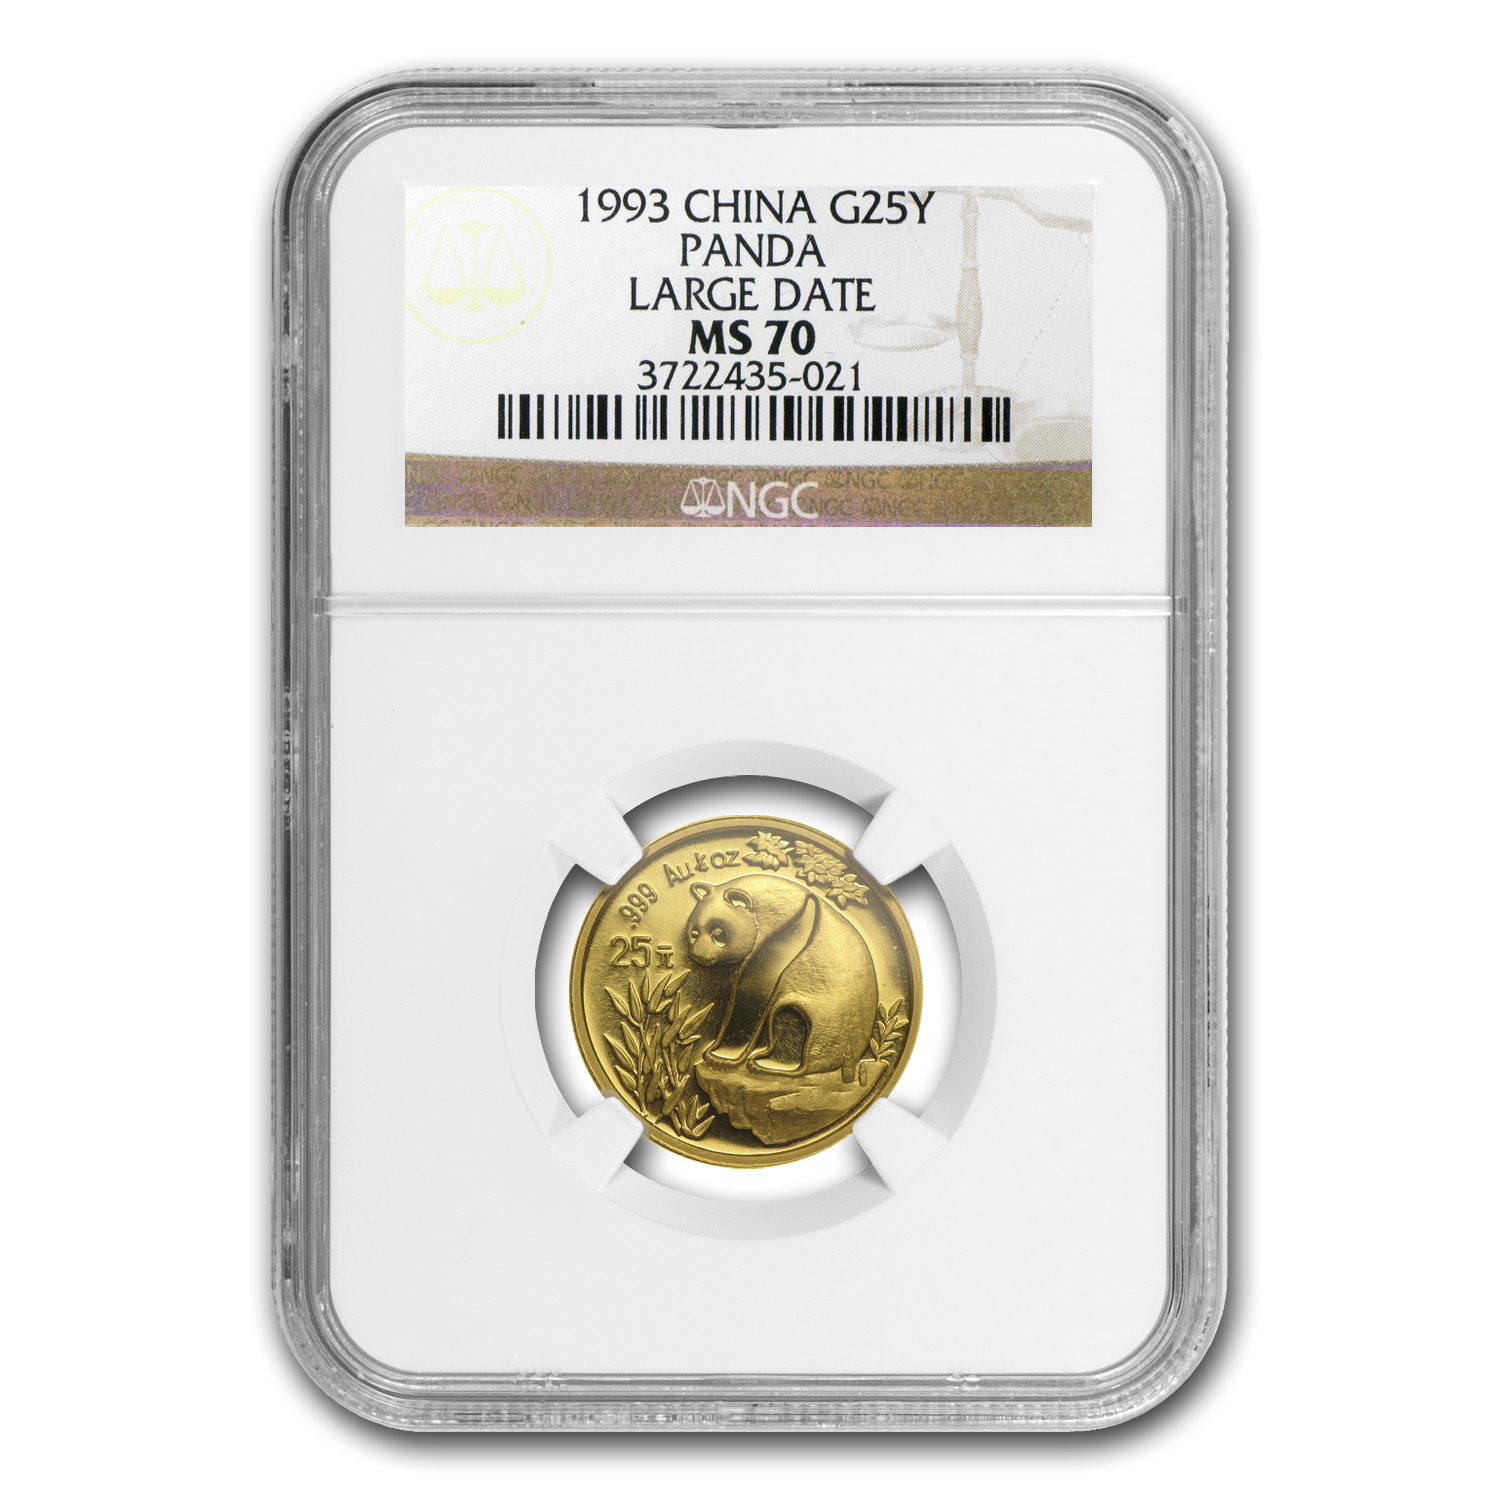 1993 (1/4 oz) Gold Chinese Panda - Large Date MS-70 NGC